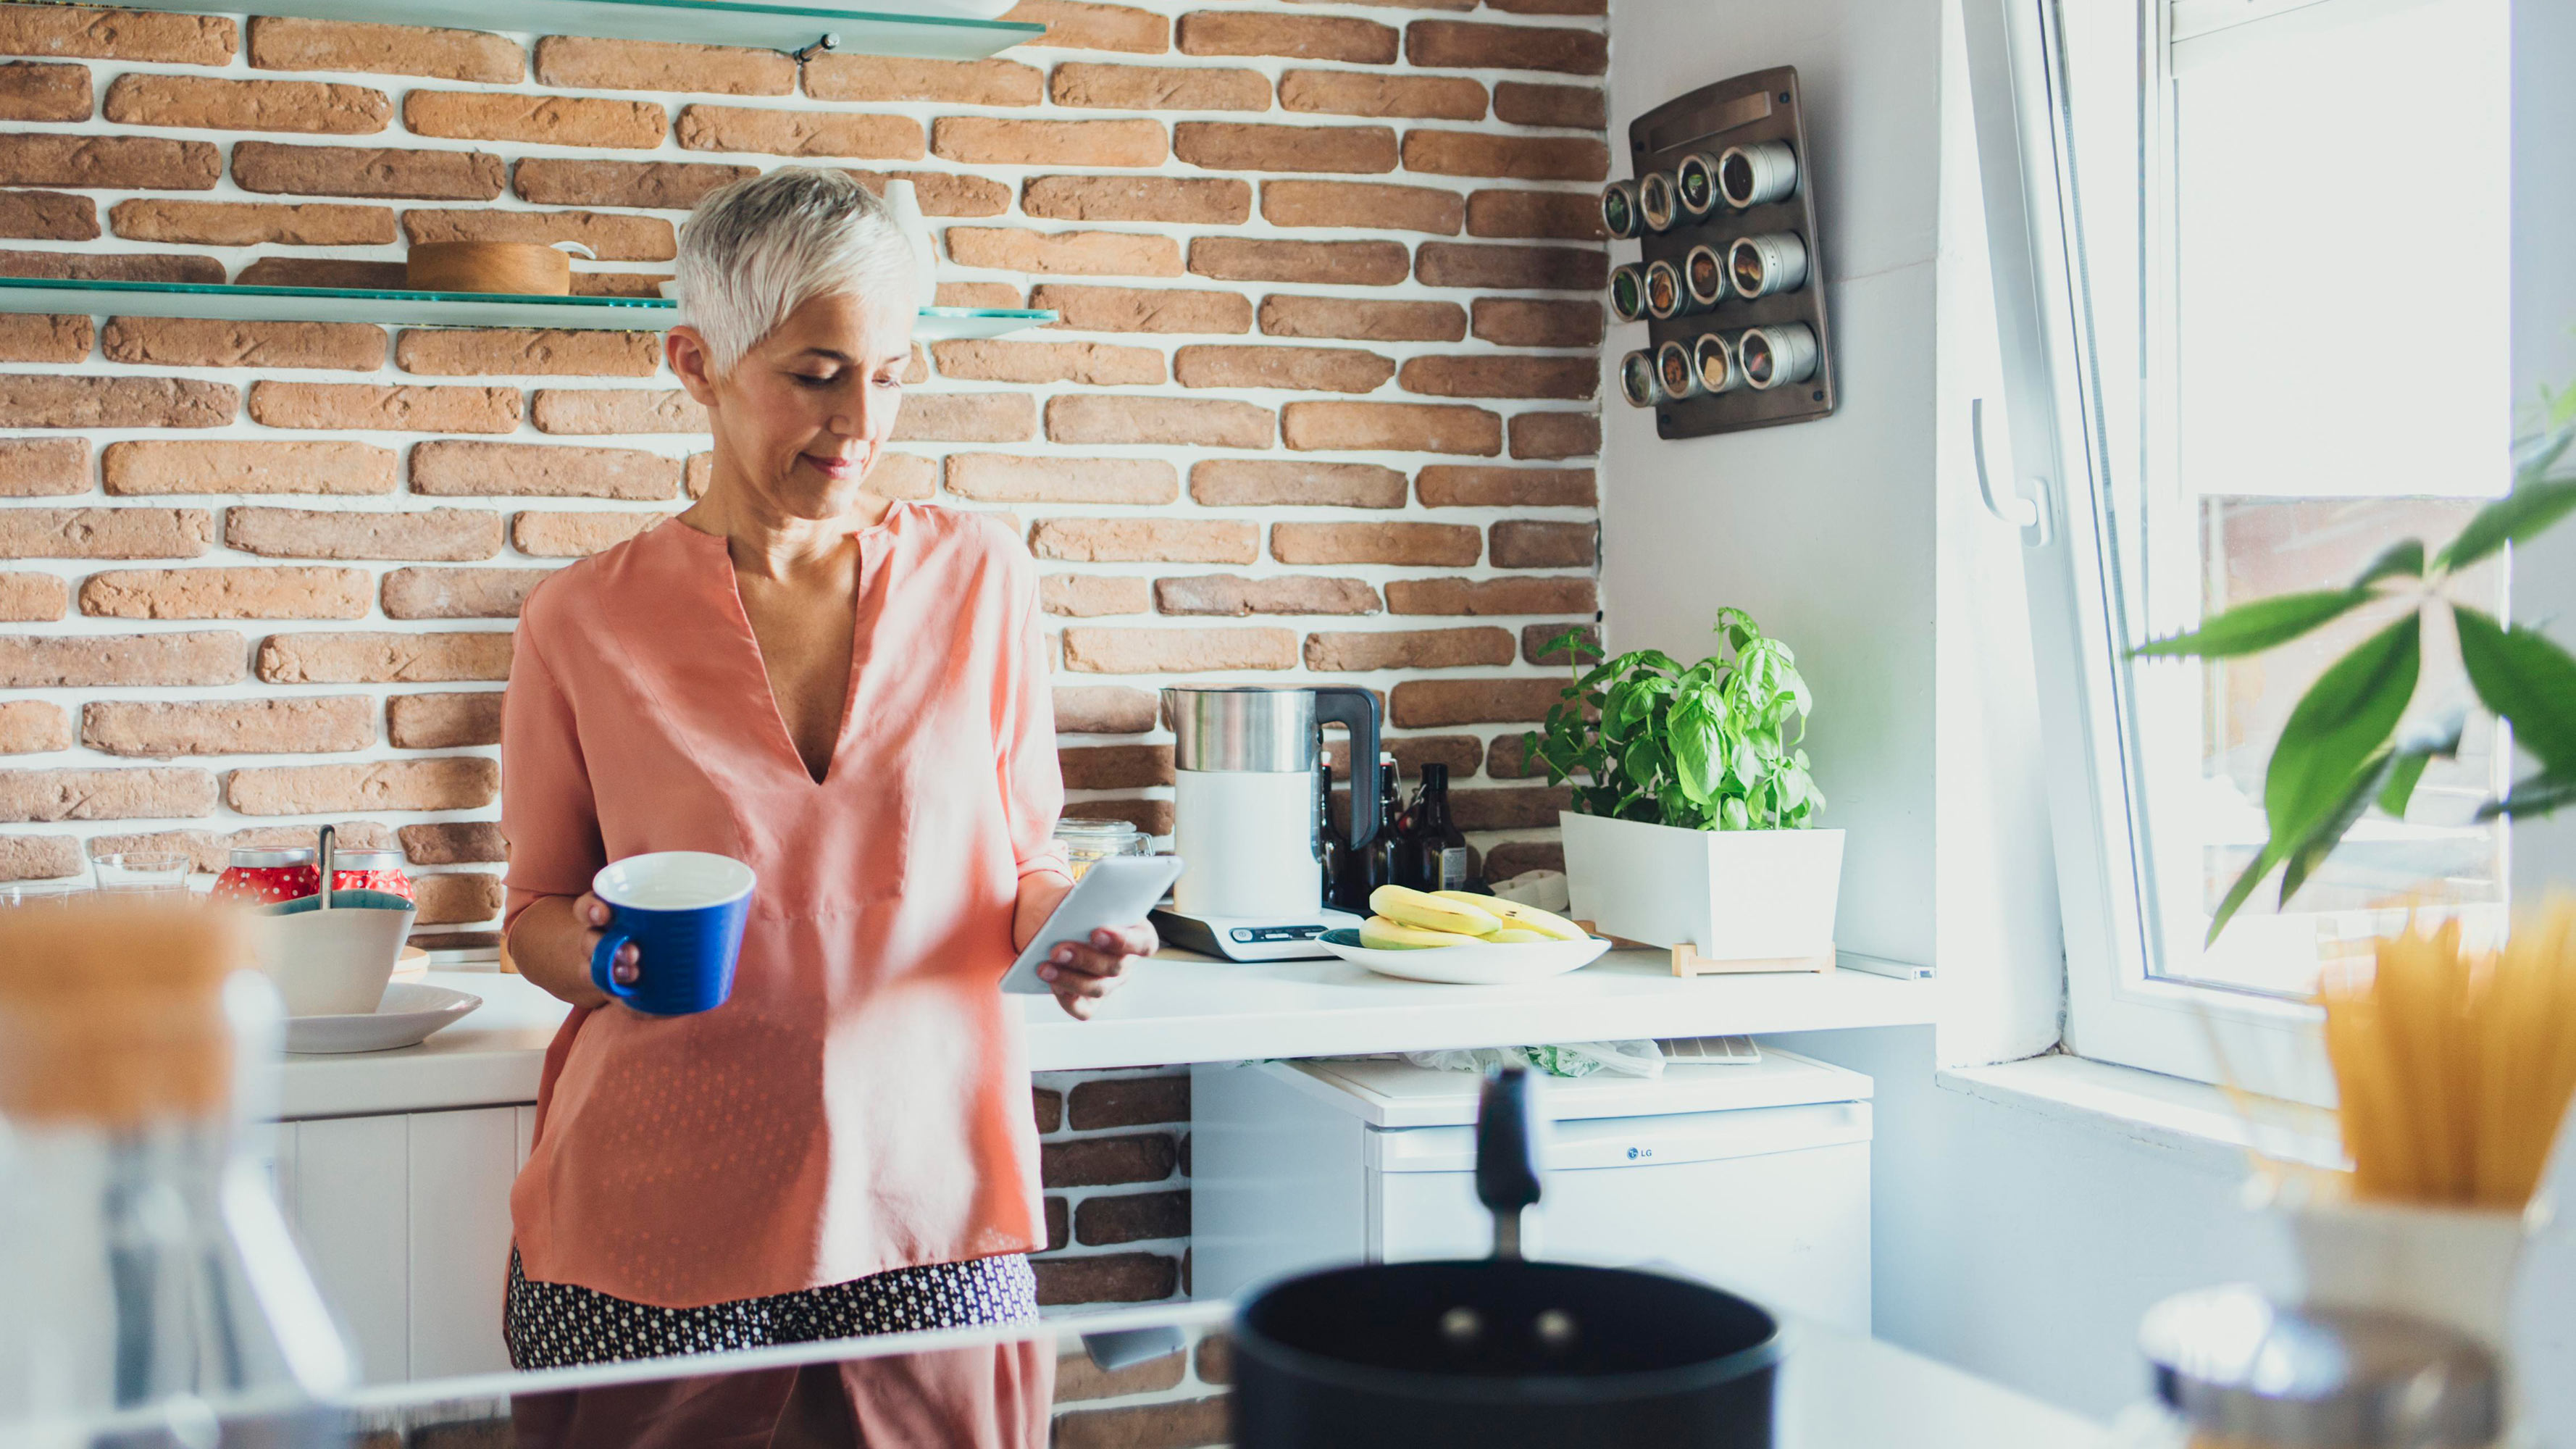 An older female, wearing bright and comfortable clothing, stands in a very modern kitchen with a prominent brick wall, holding a mug in her right hand while using her mobile phone with her left hand.